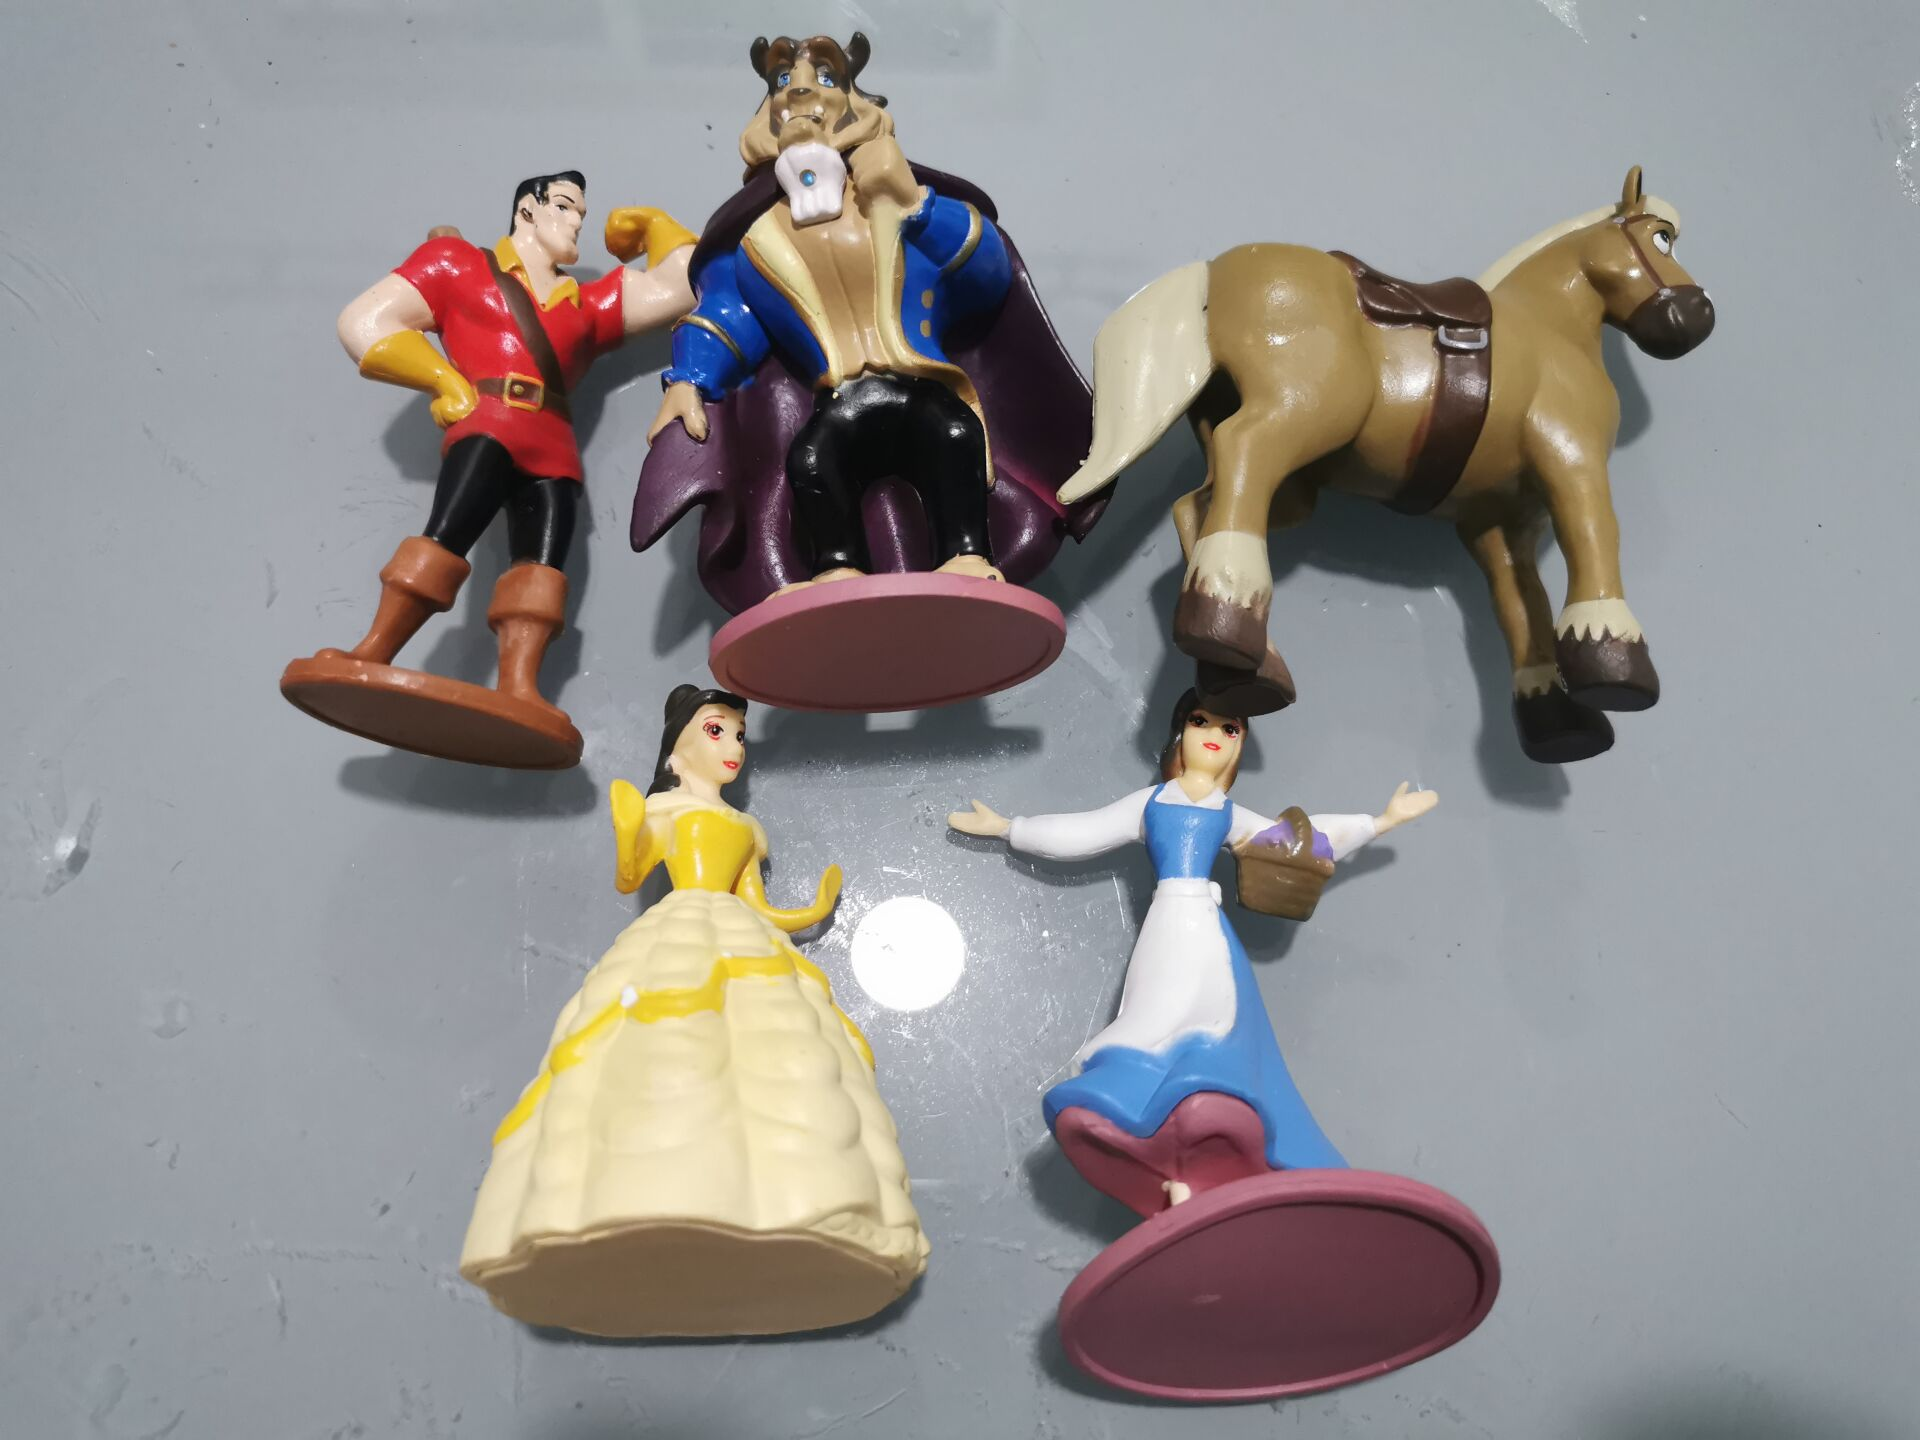 2020 5pcs/lot Beauty And The Beast Figures Belle Beast PVC Action Figure Toy Children Gift